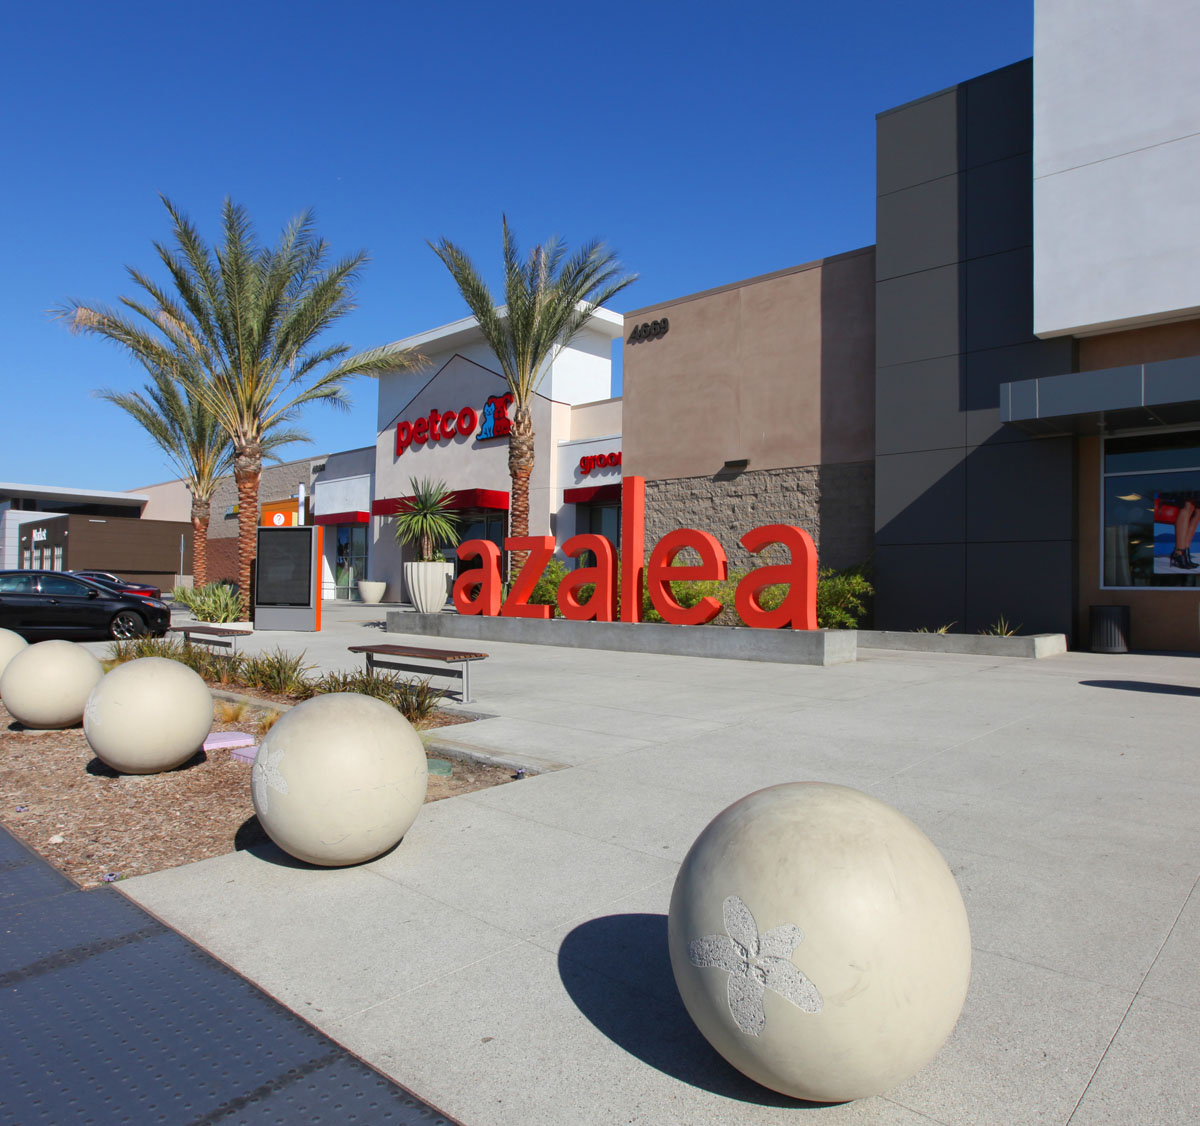 Azalea Regional Shopping Center